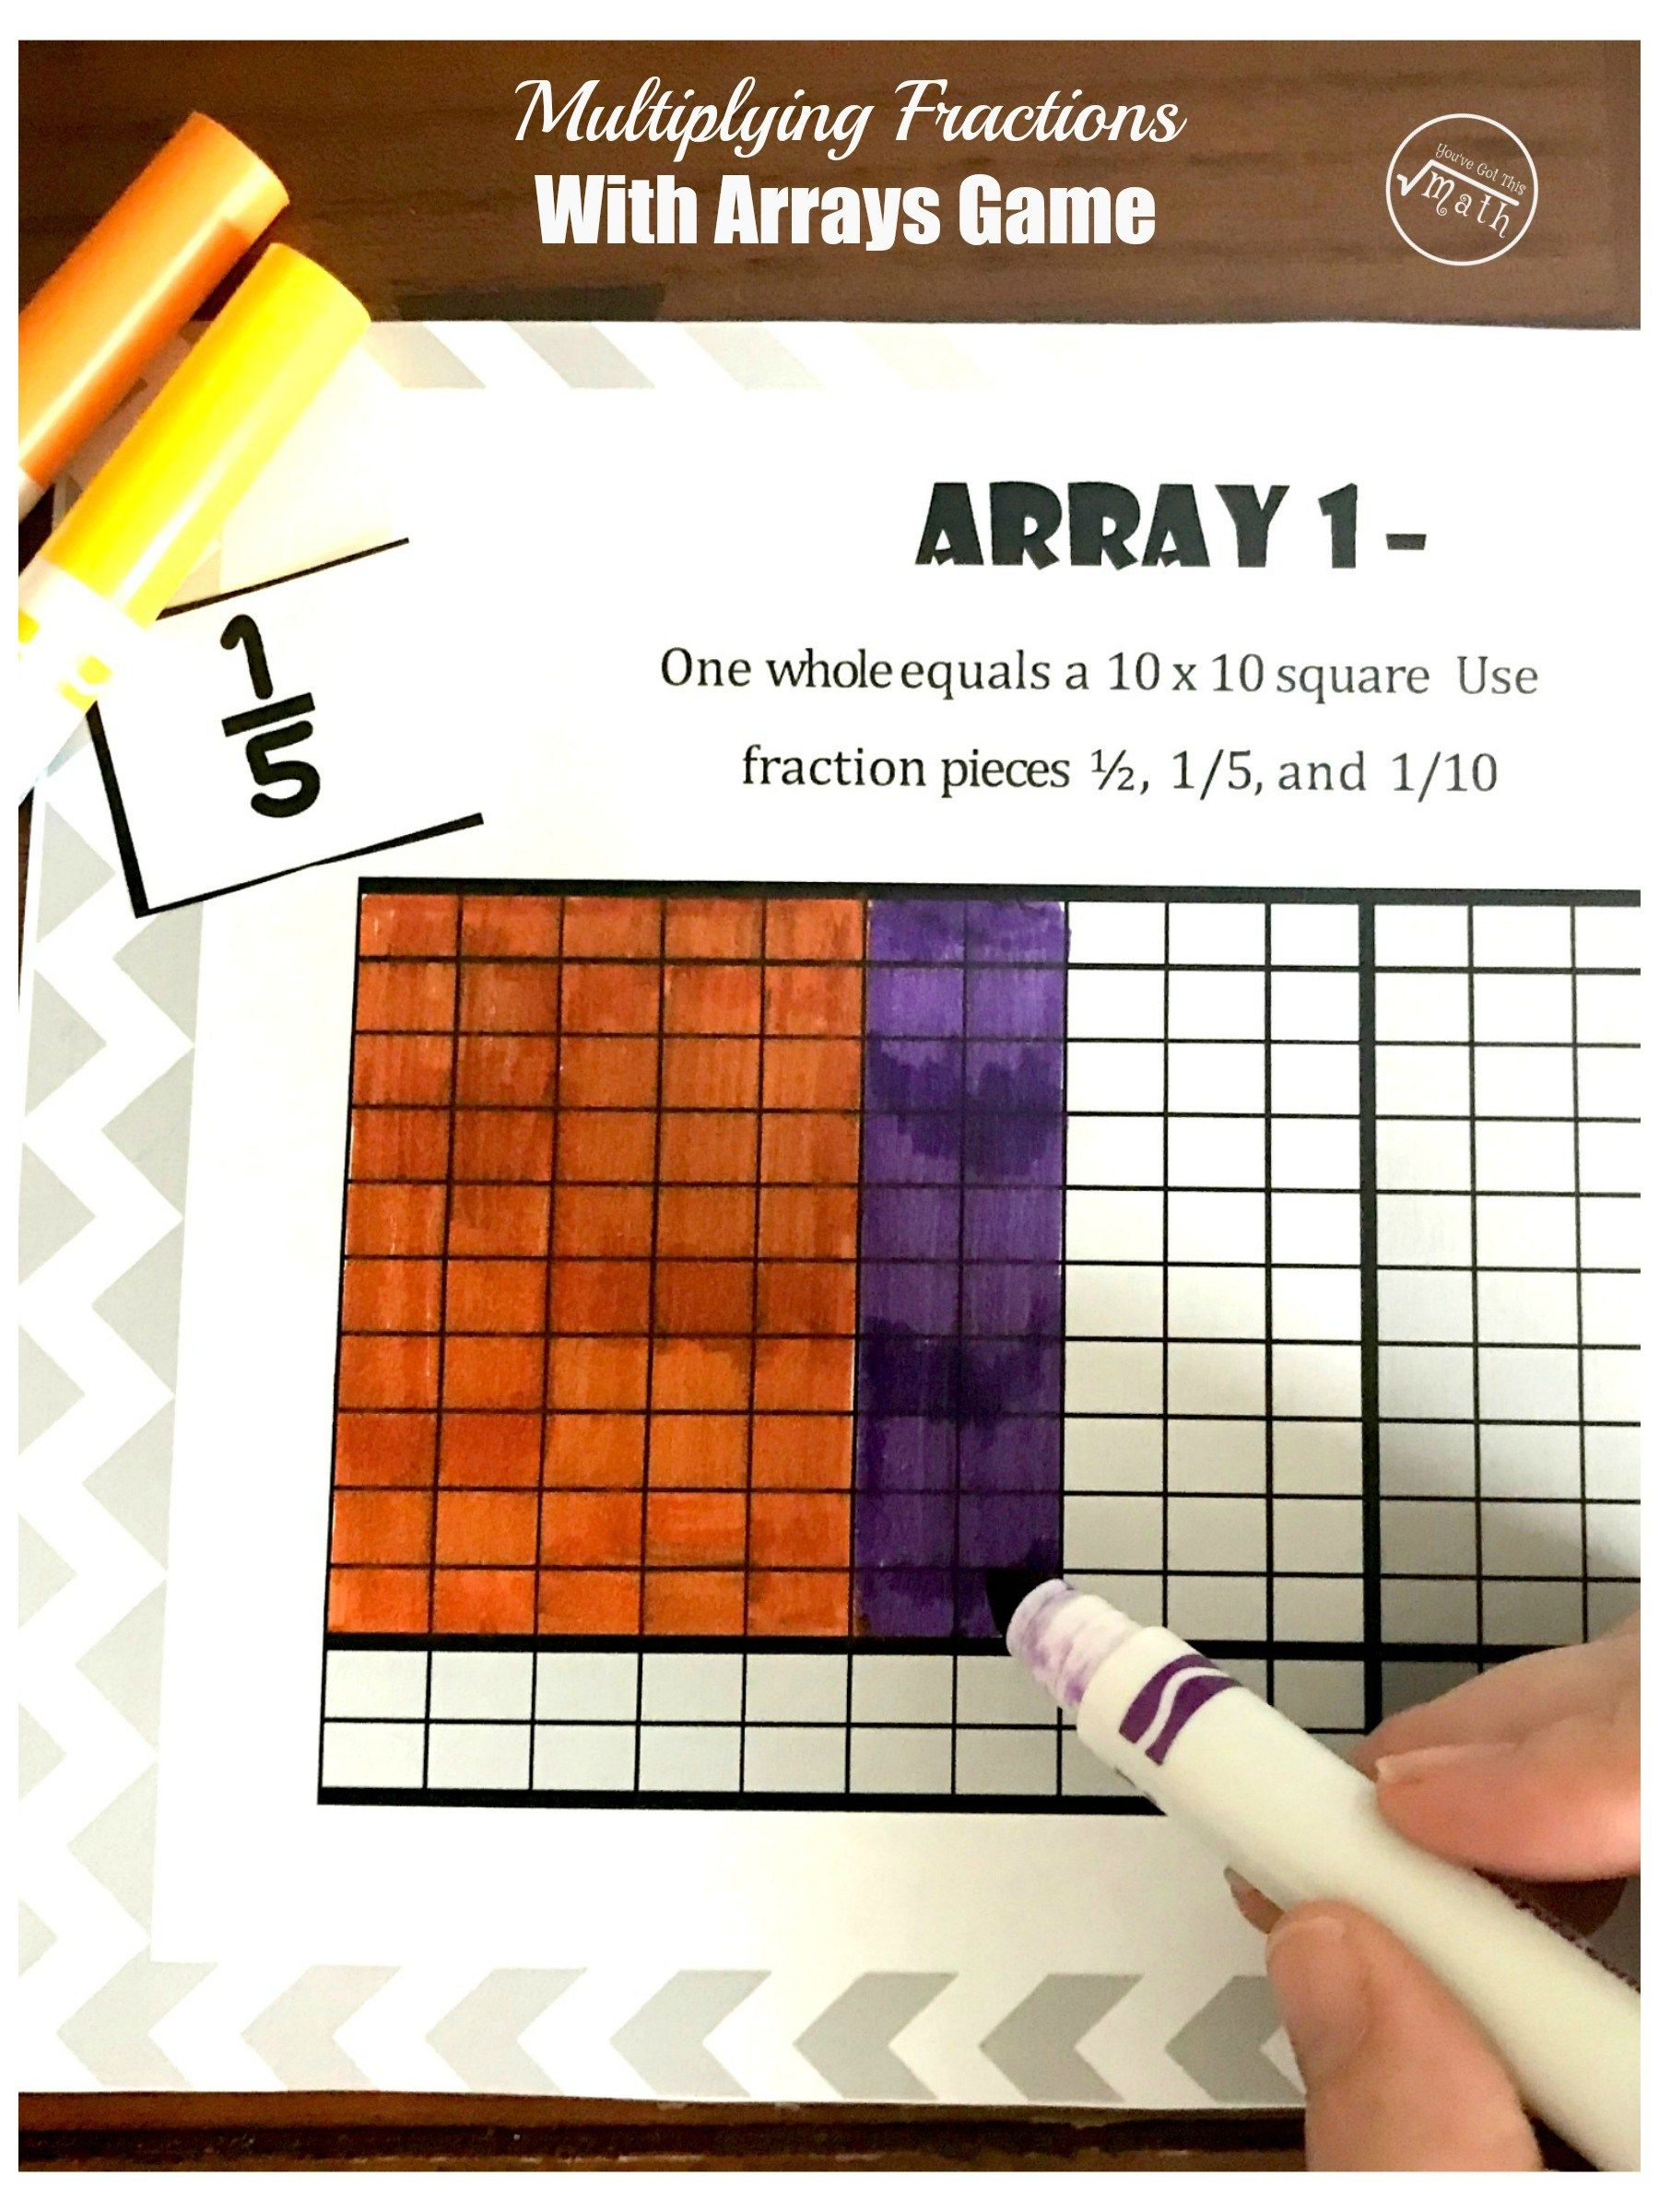 A Free Game To Help Children Learn to Multiply Fractions With Arrays